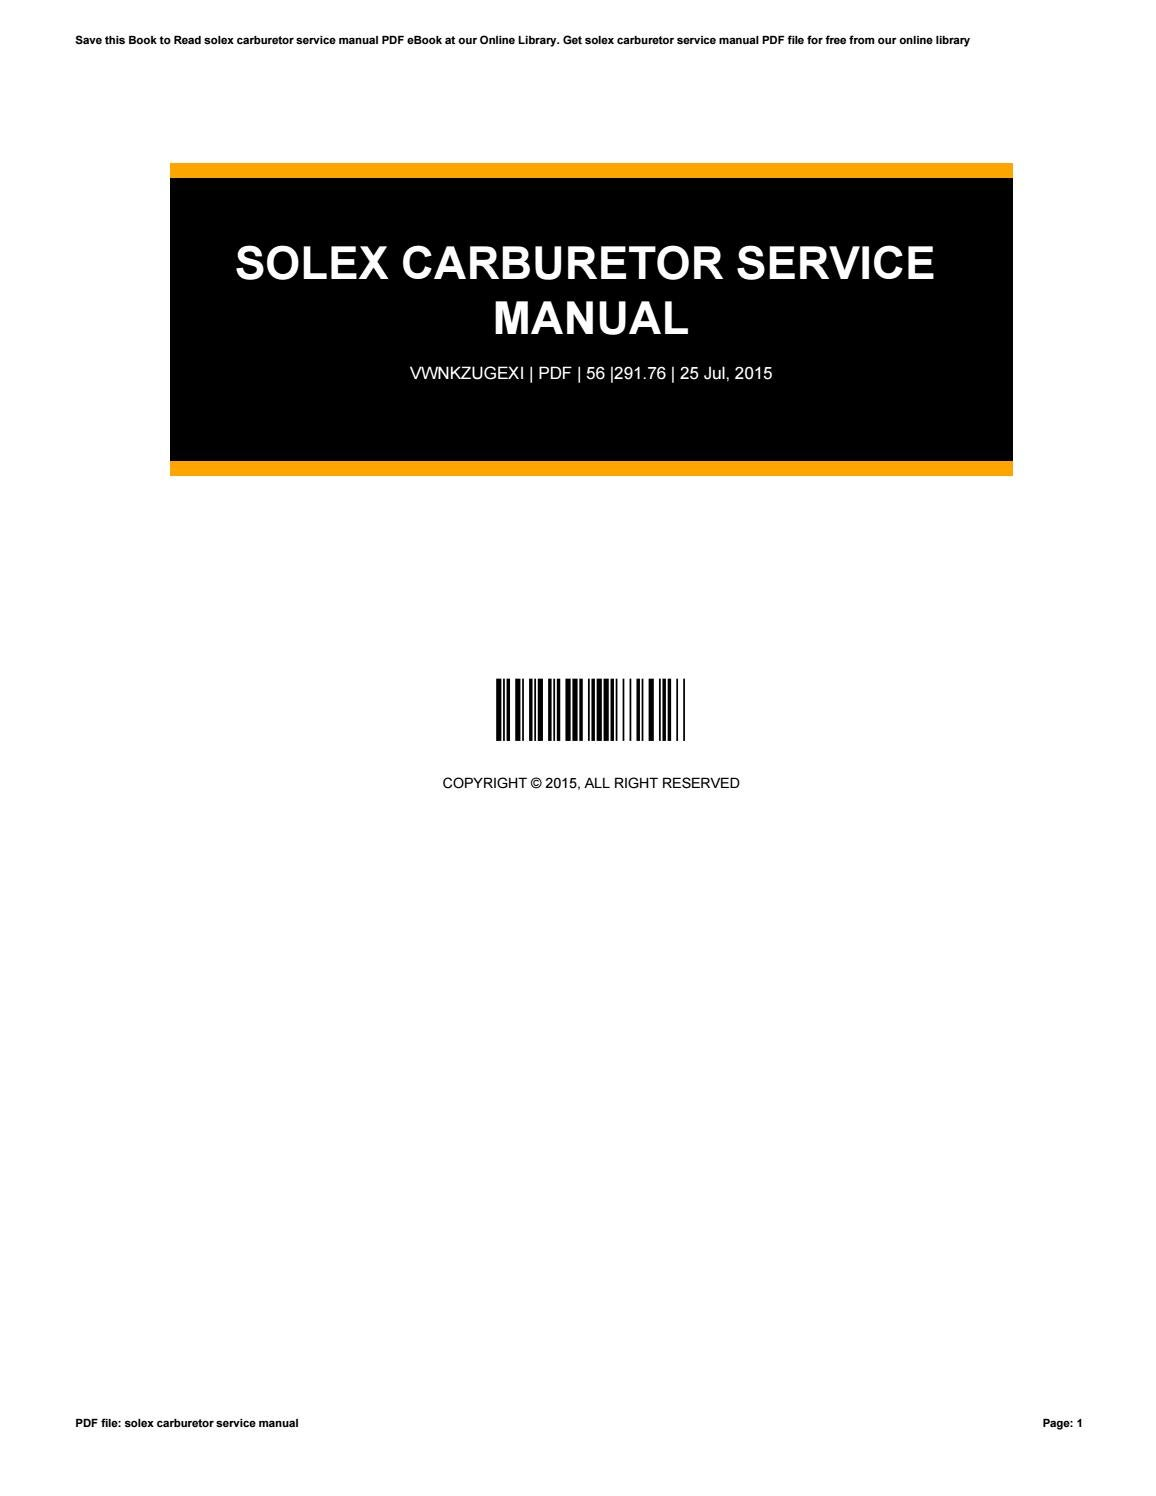 Solex carburetor service manual by DonnaMatson1784 - issuu